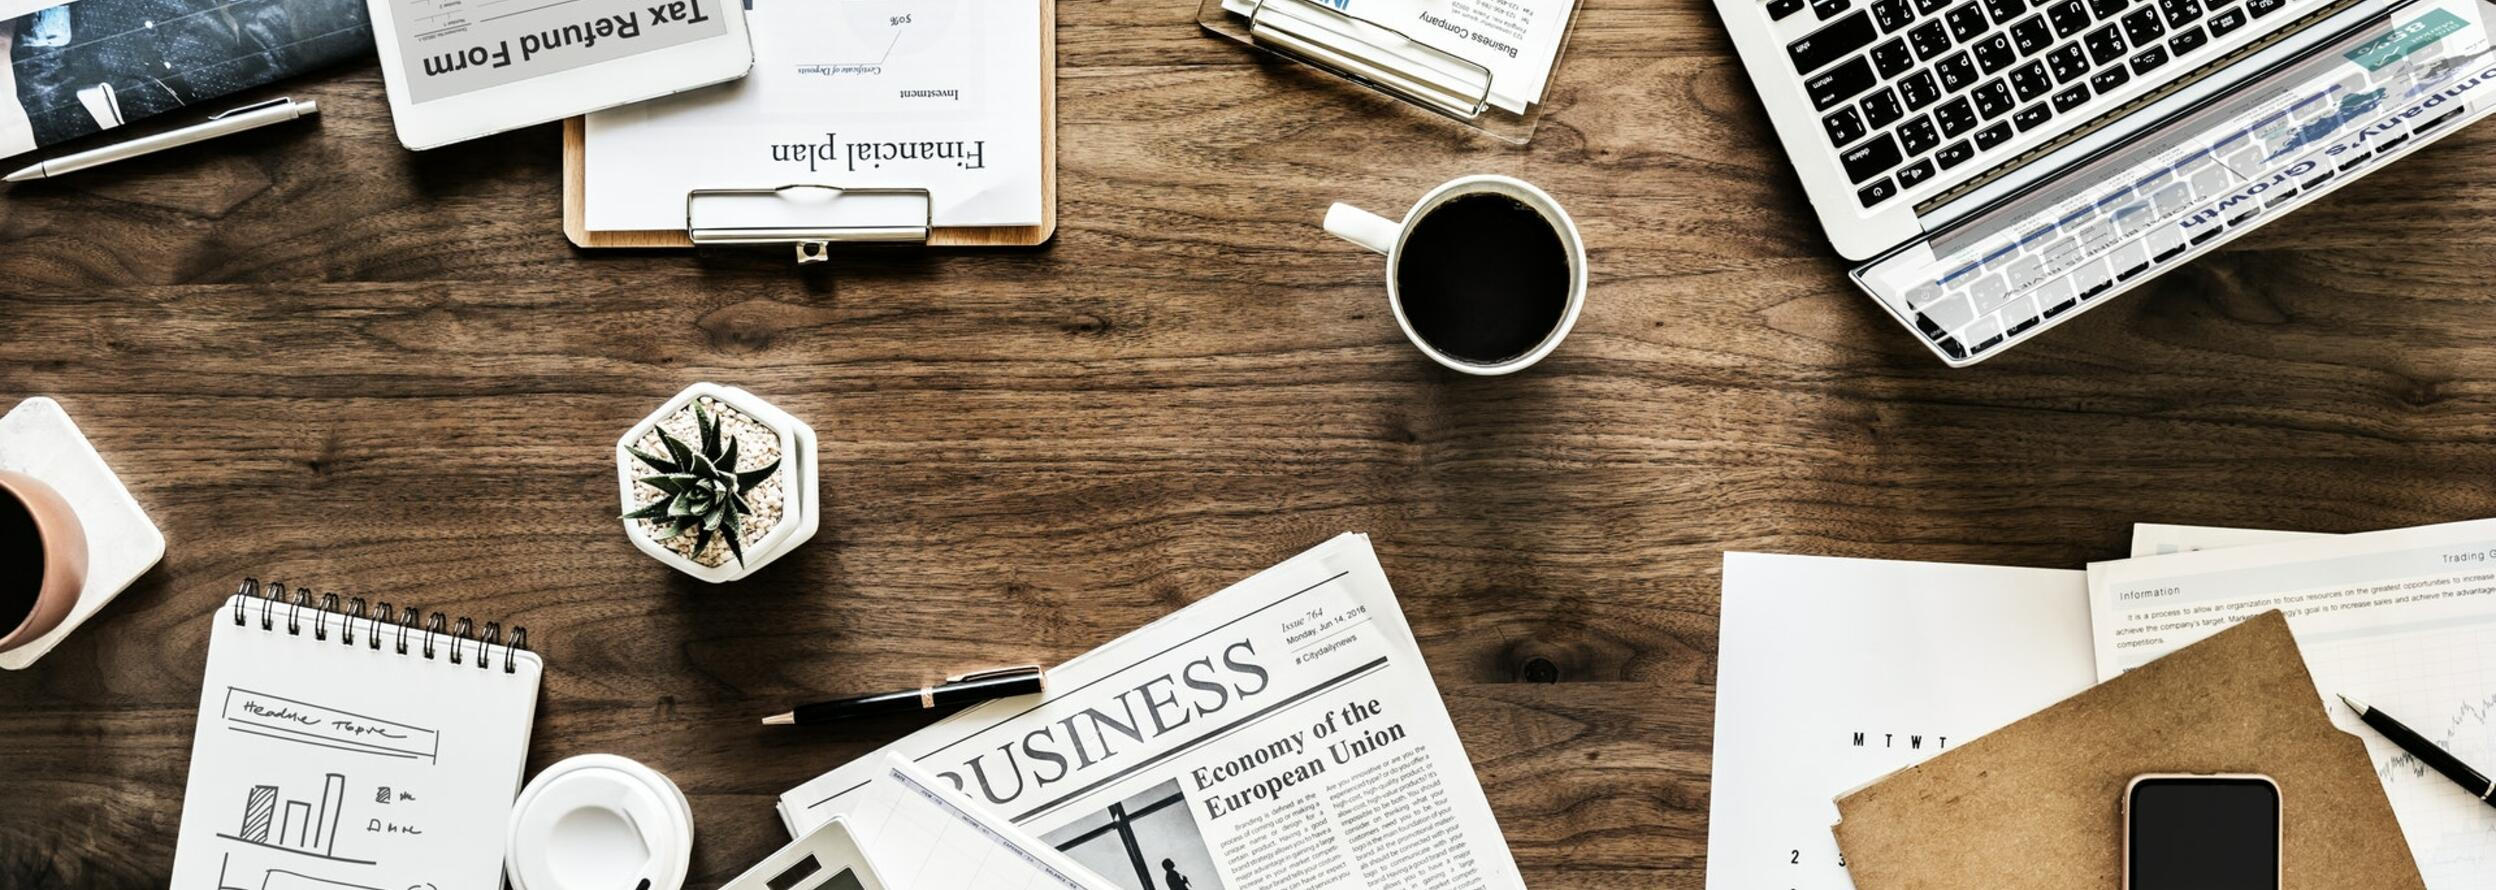 A table with newspapers, a laptop, reports and a coffee mug